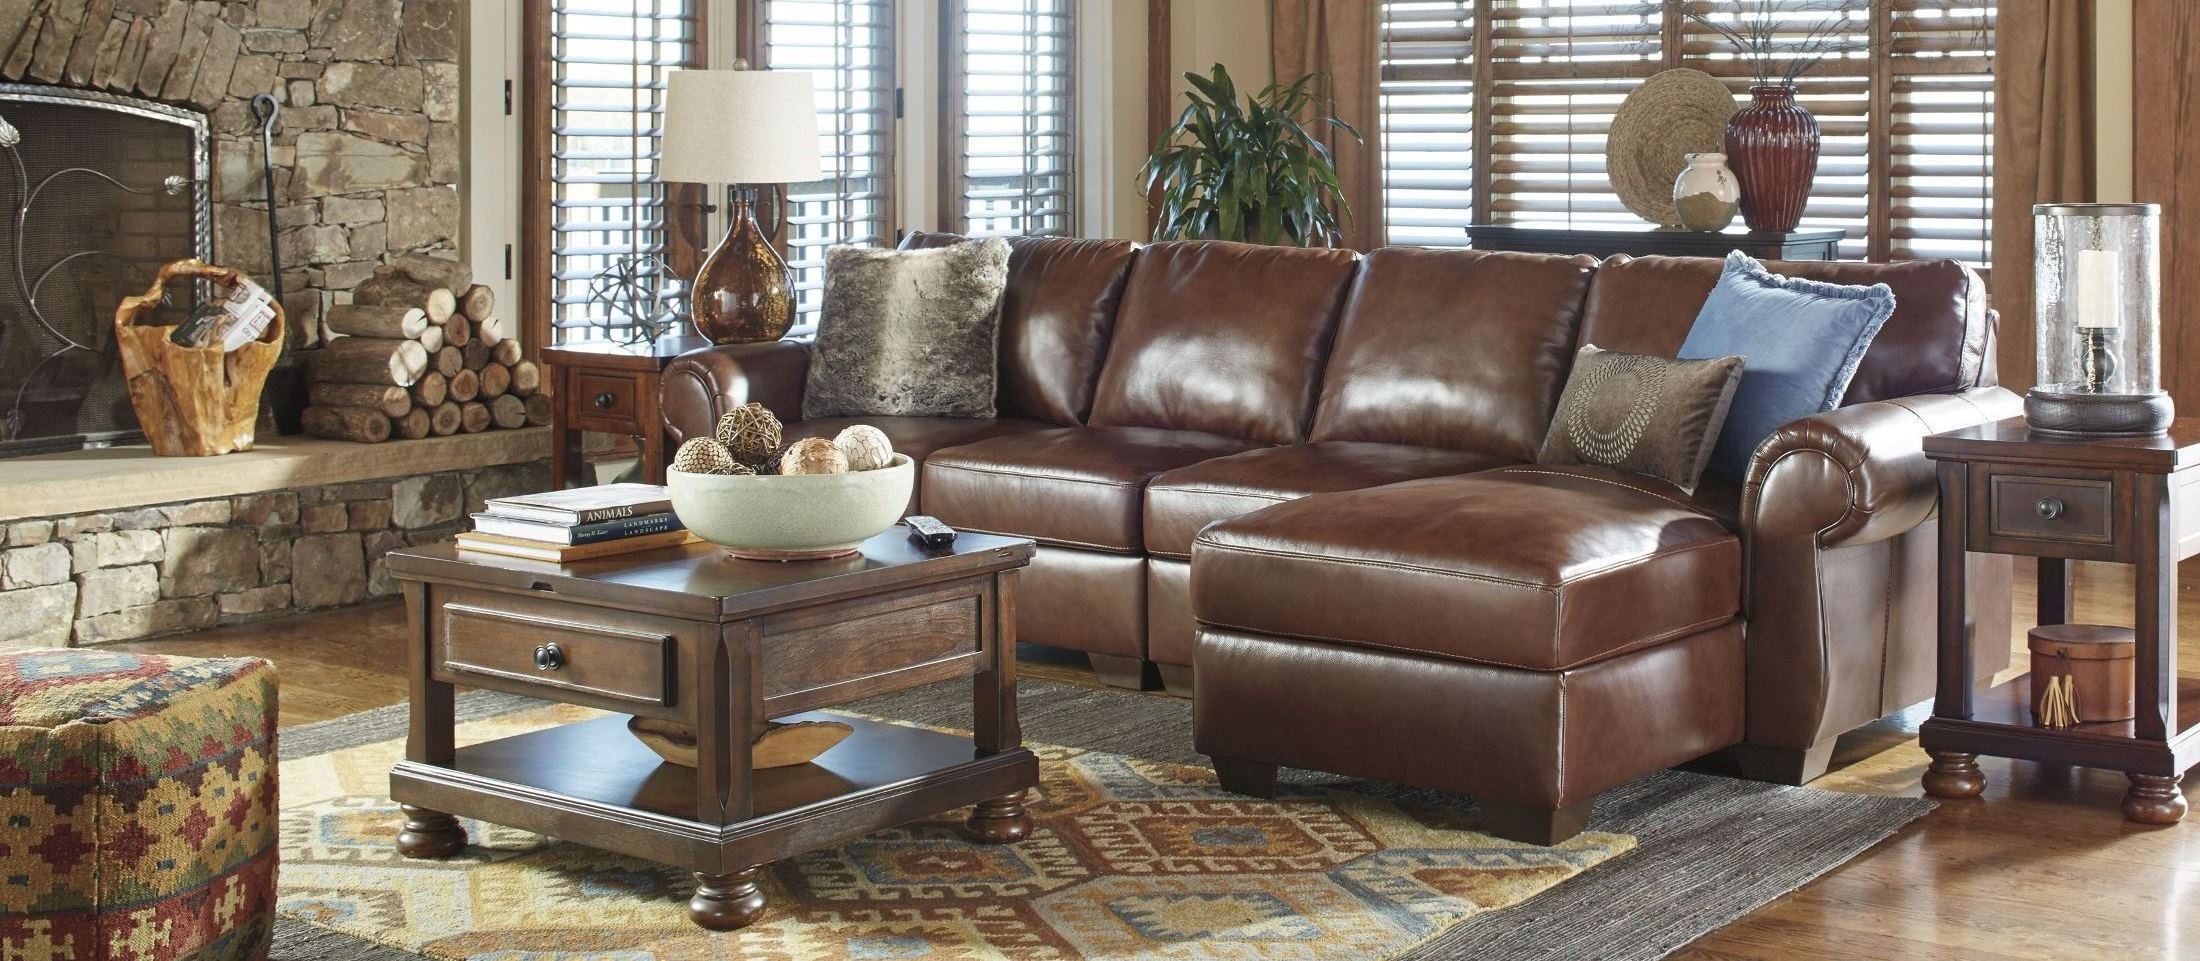 Lugoro saddle raf sectional 5060217 46 55 ashley for Affordable furniture 3 piece sectional in wyoming saddle